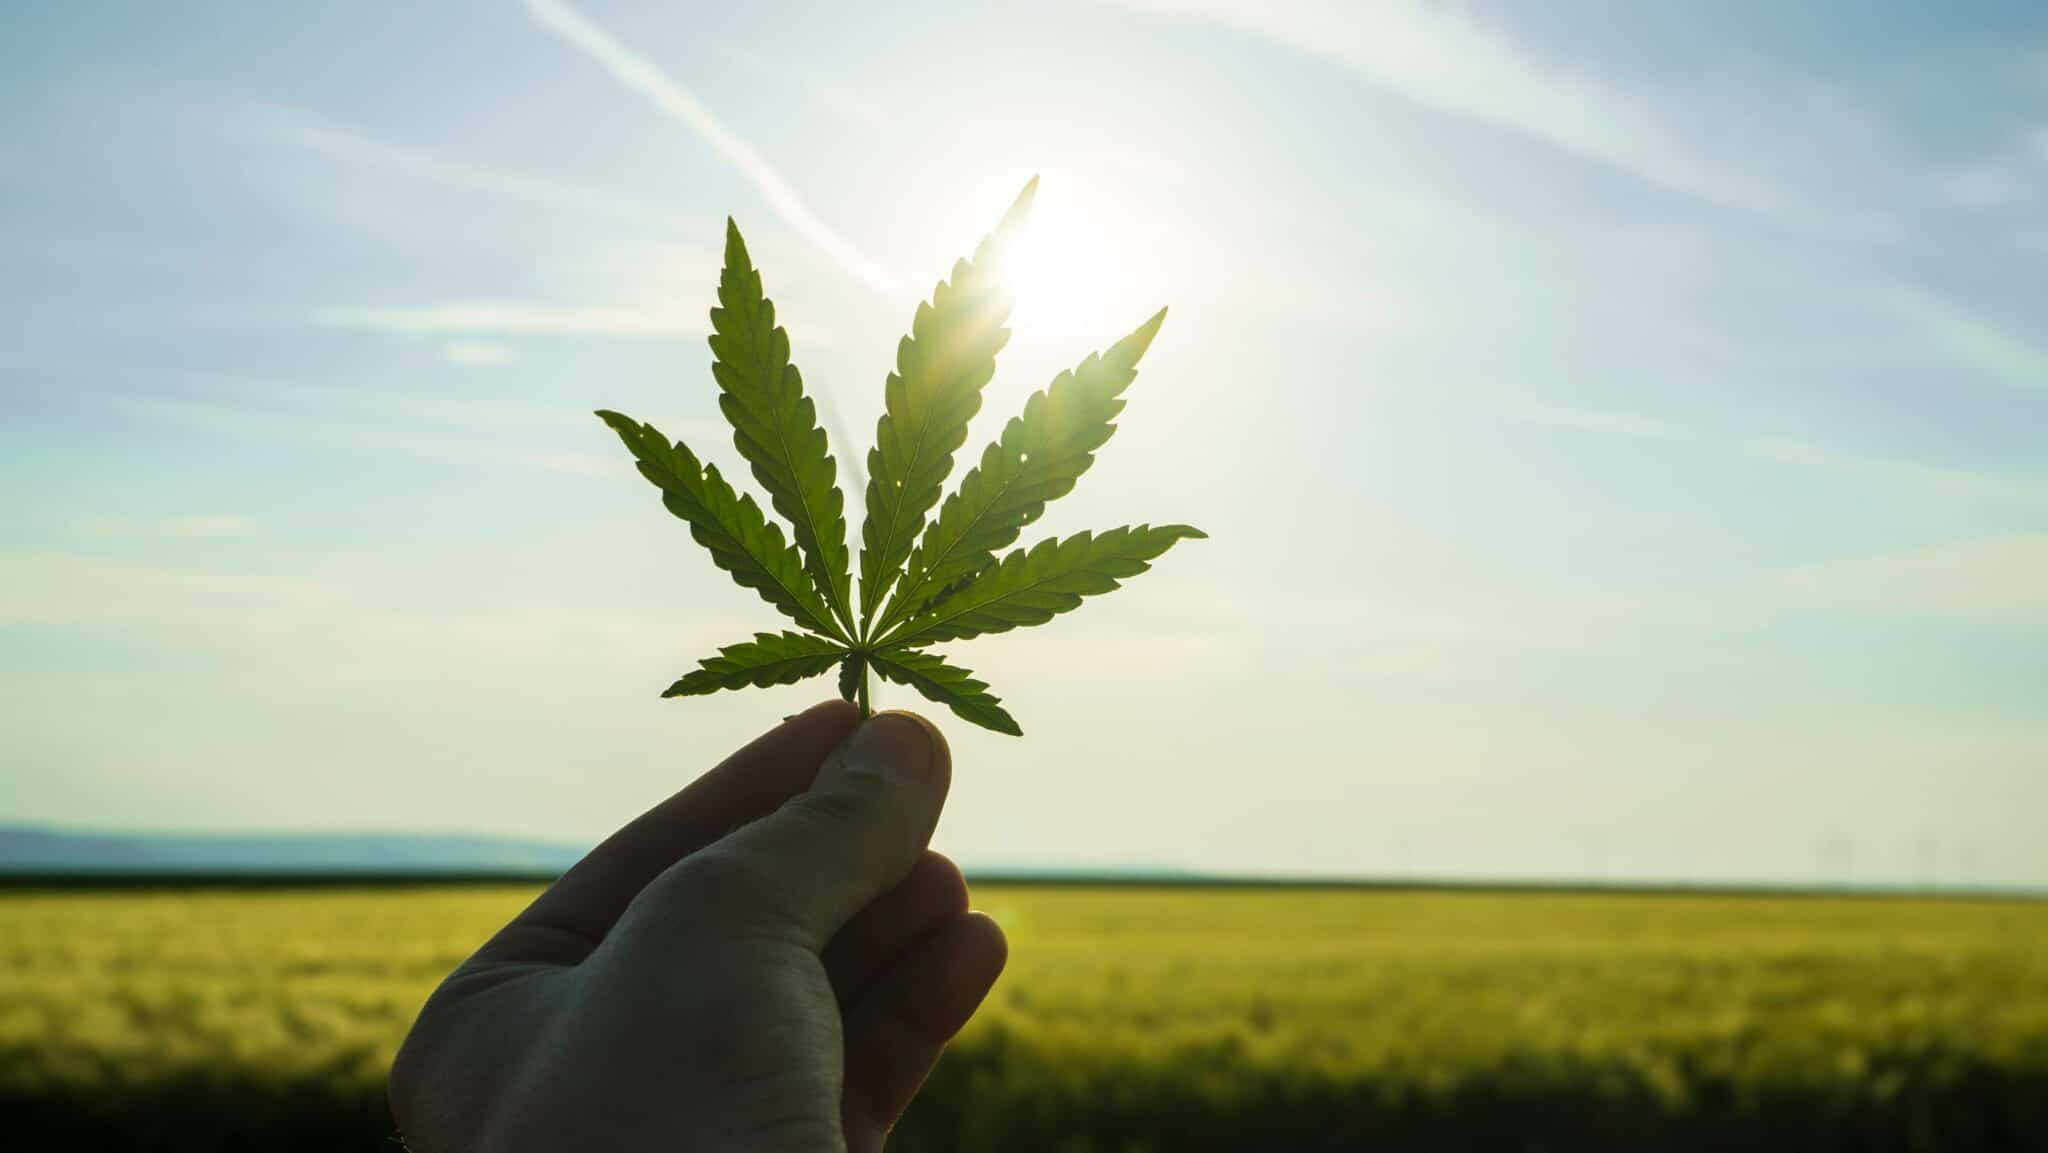 Cultivate Las Vegas Dispensary Study Shows Cannabis is Becoming a Less Divisive Issue in the U.S. Keep out of reach of children. For use only by adults 21 years of age or older.